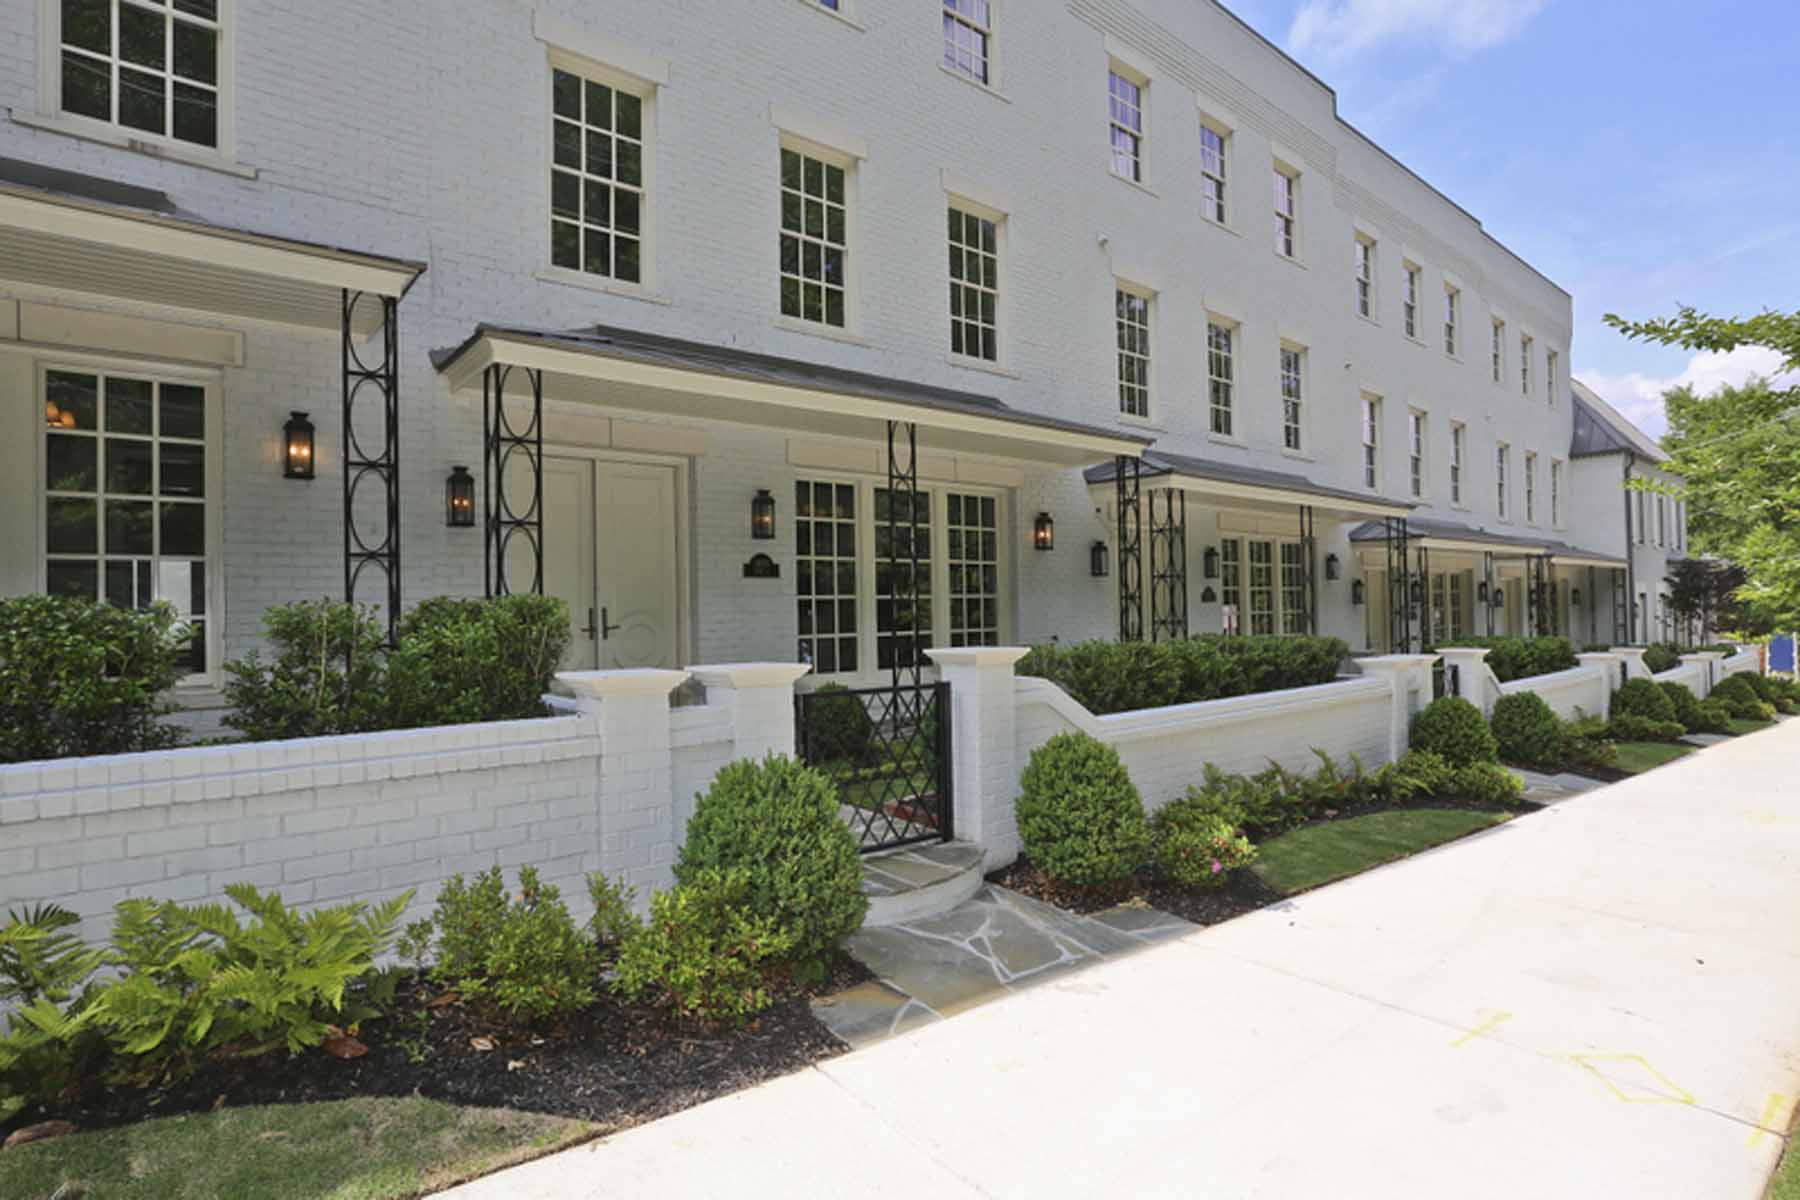 Таунхаус для того Продажа на BRAND NEW TOWNHOME BY MONTE HEWETT HOMES. 1400 Piedmont Avenue NE No. 6 Atlanta, Джорджия, 30309 Соединенные Штаты